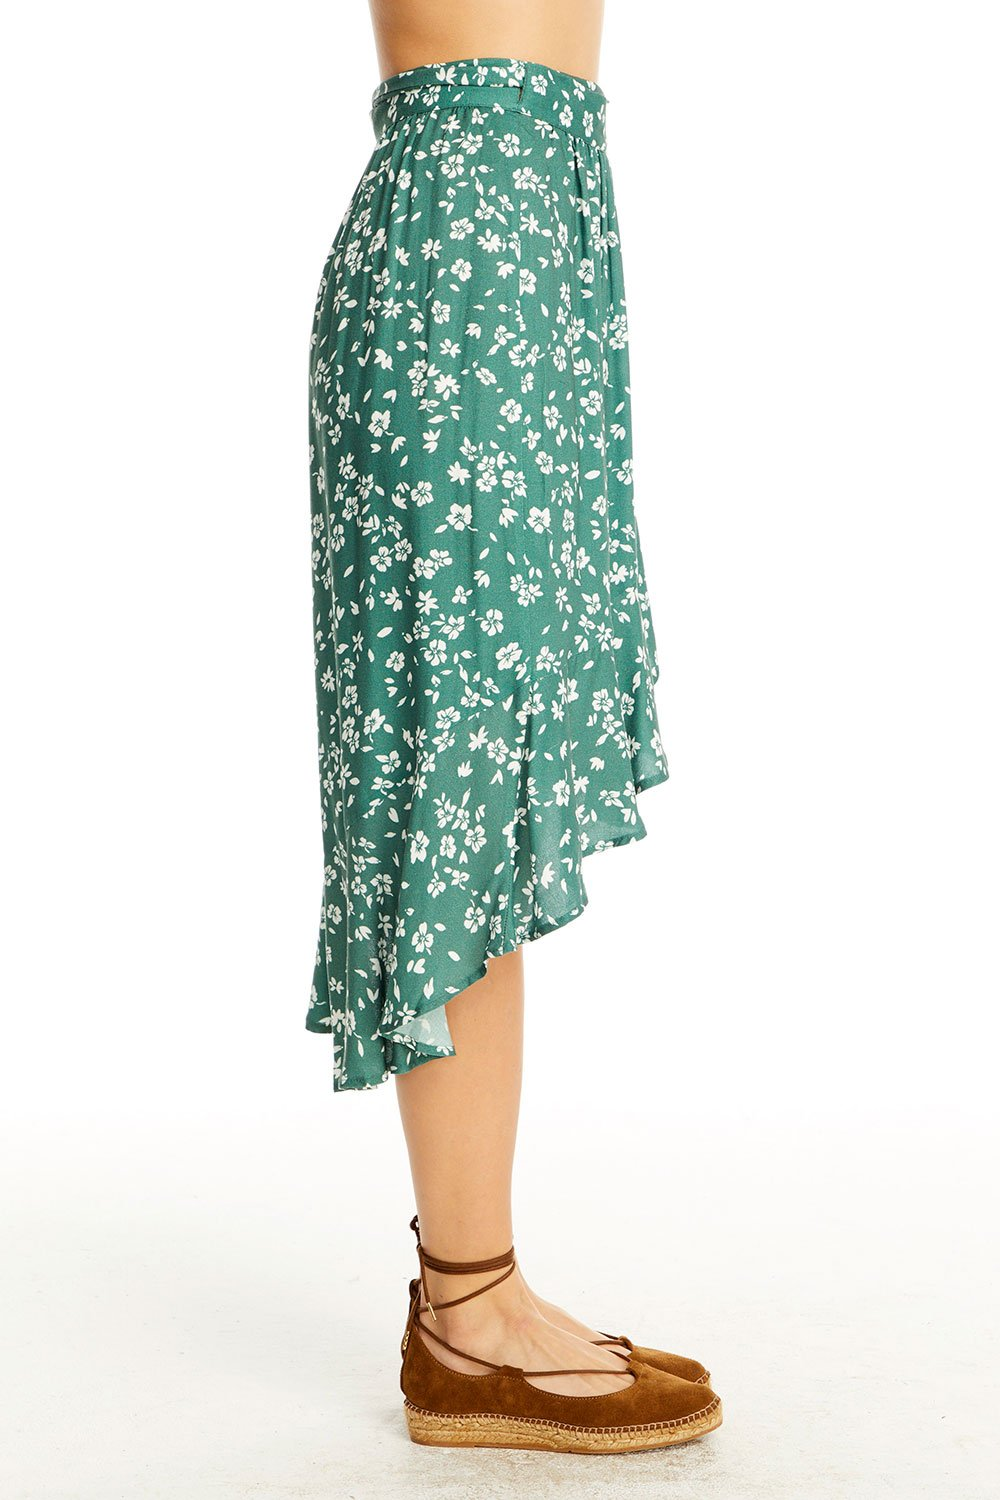 MILLIE WRAP SKIRT - LOST POPPY